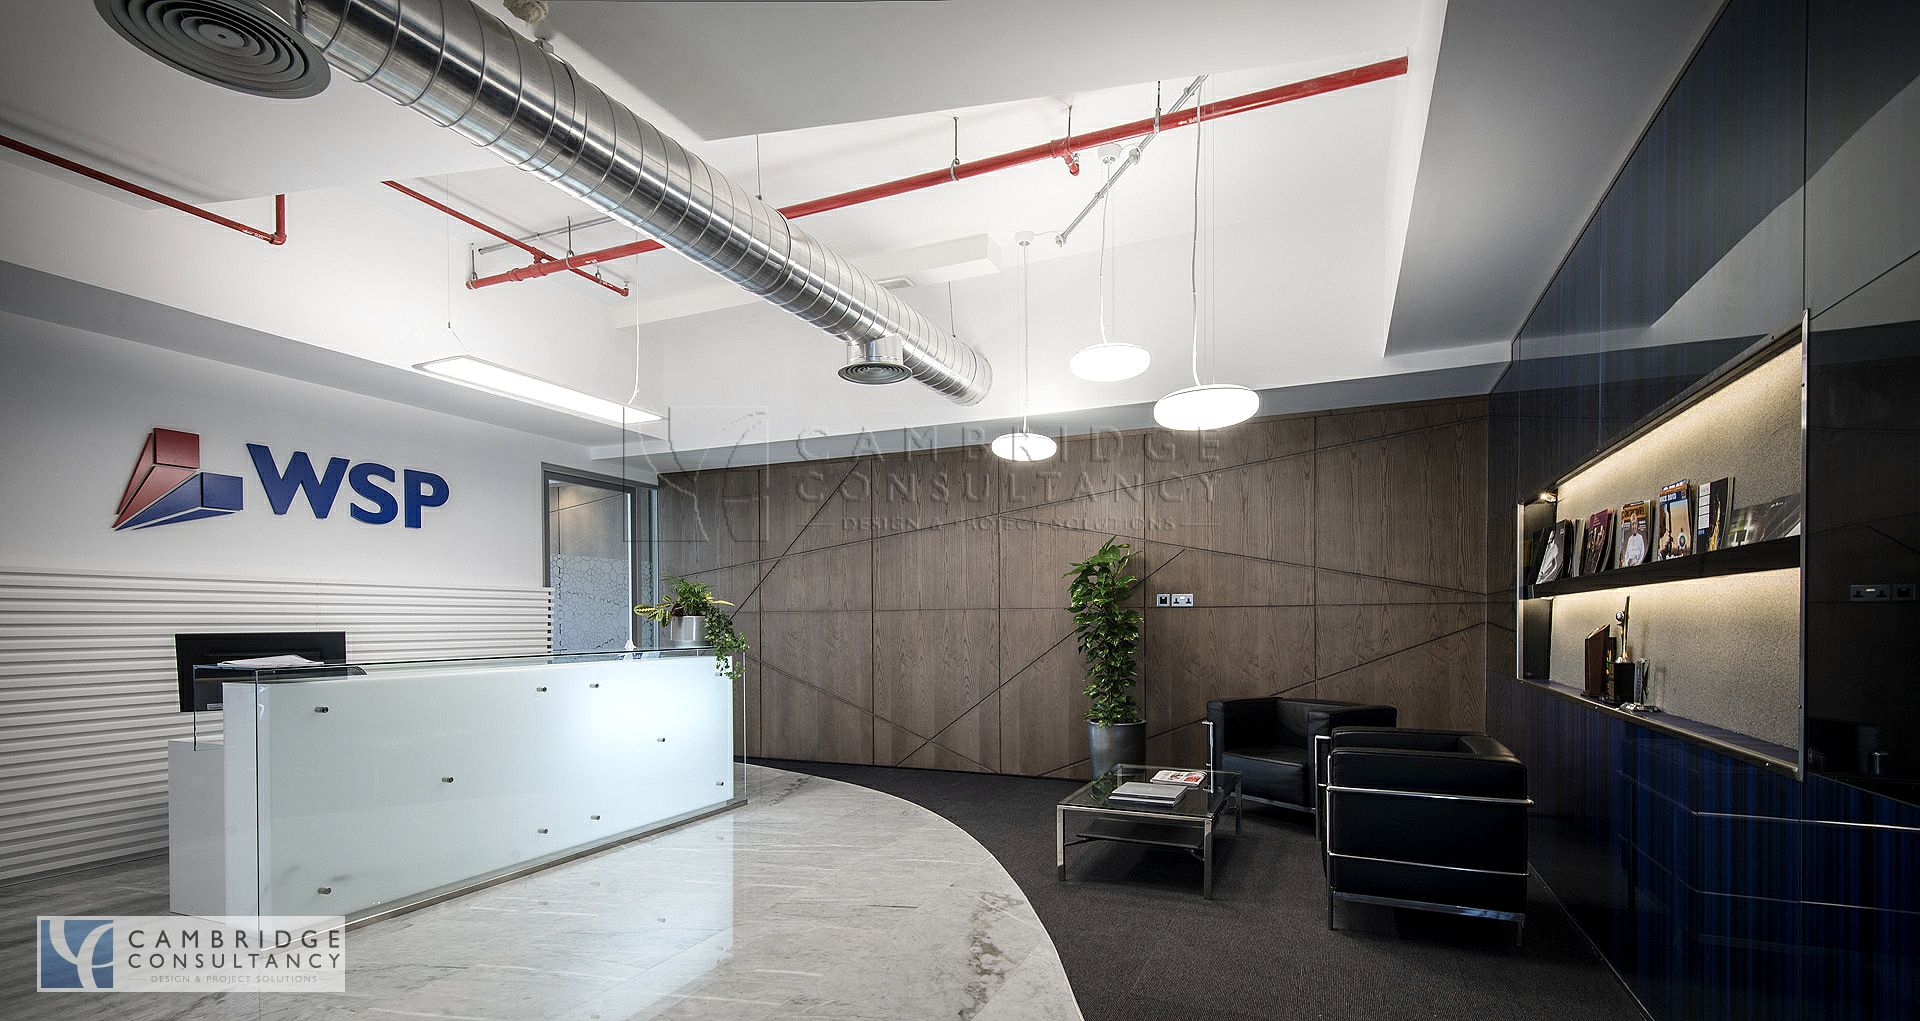 Wsp office modern design open ceiling industrial for Office design cardiff